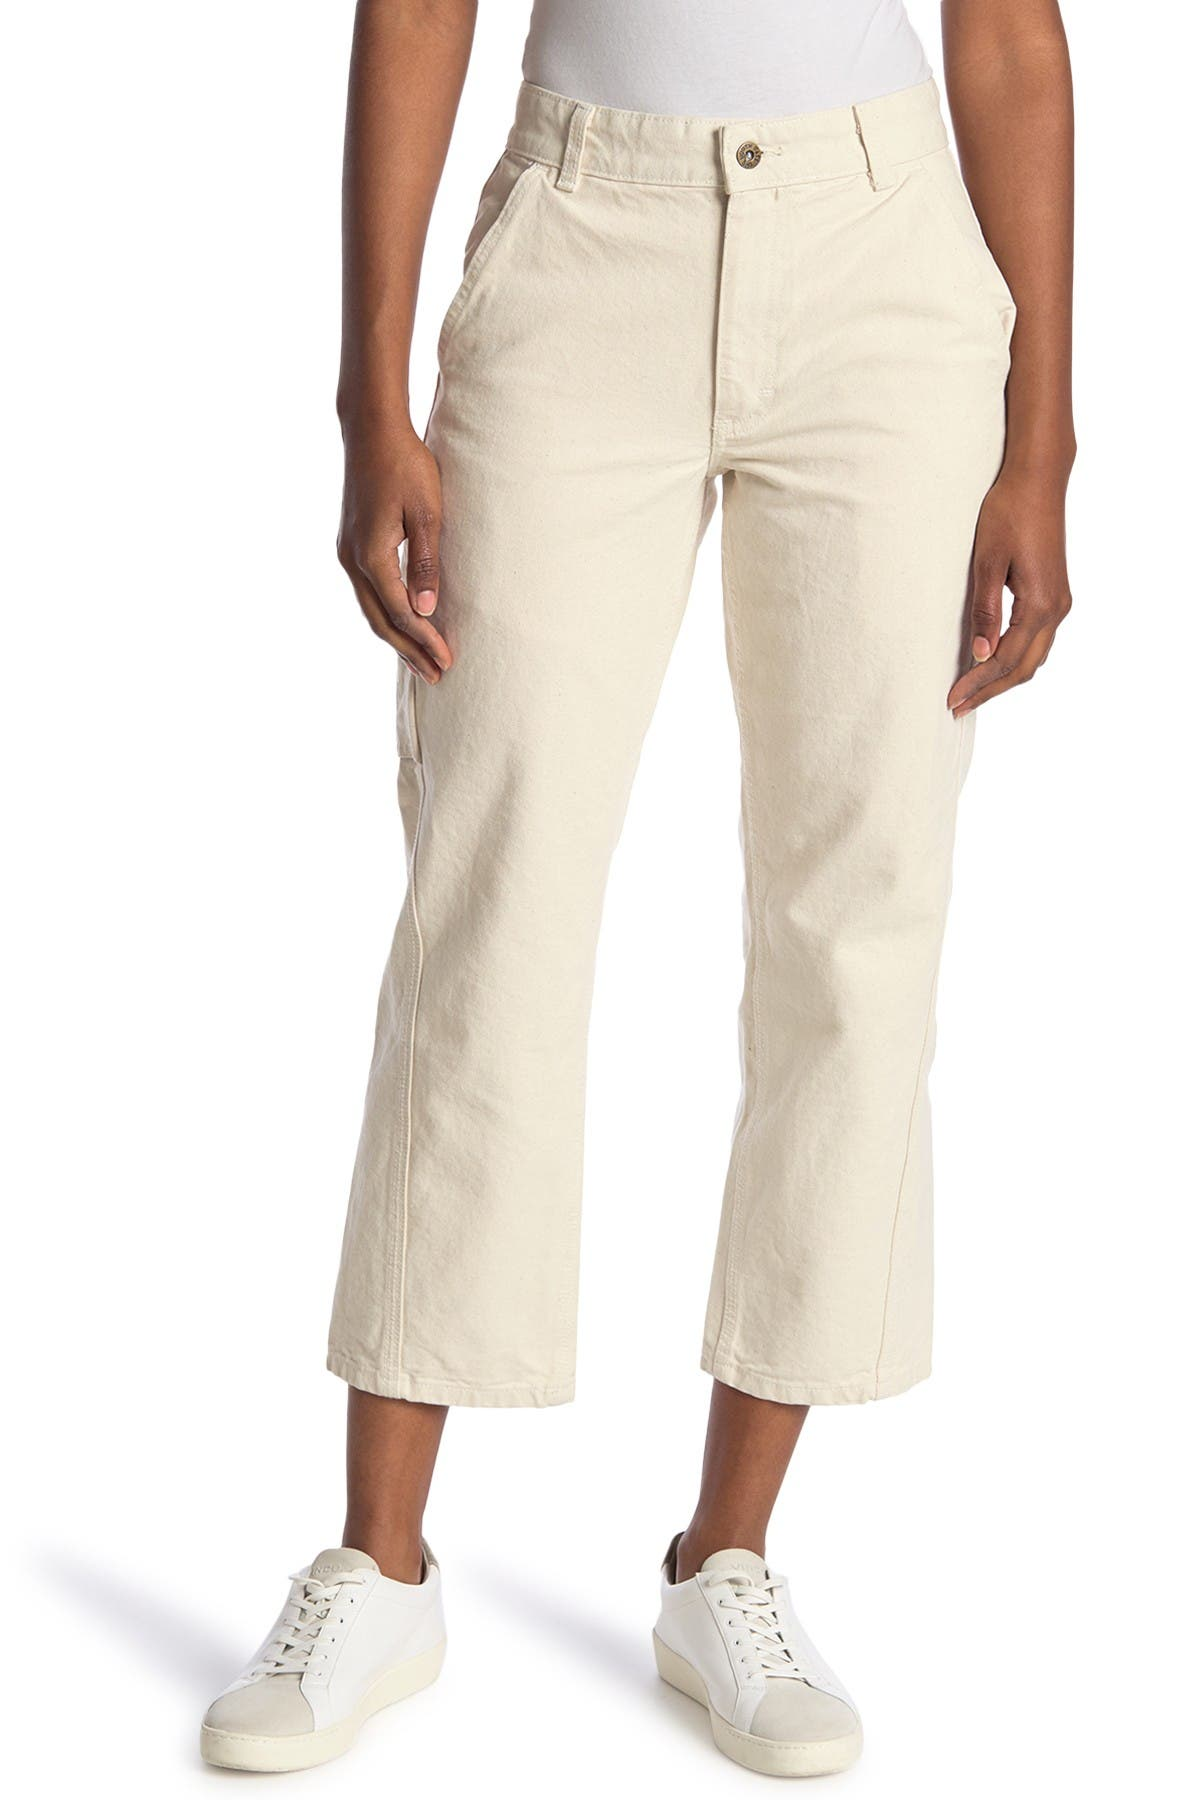 Image of The North Face Berkeley Pants